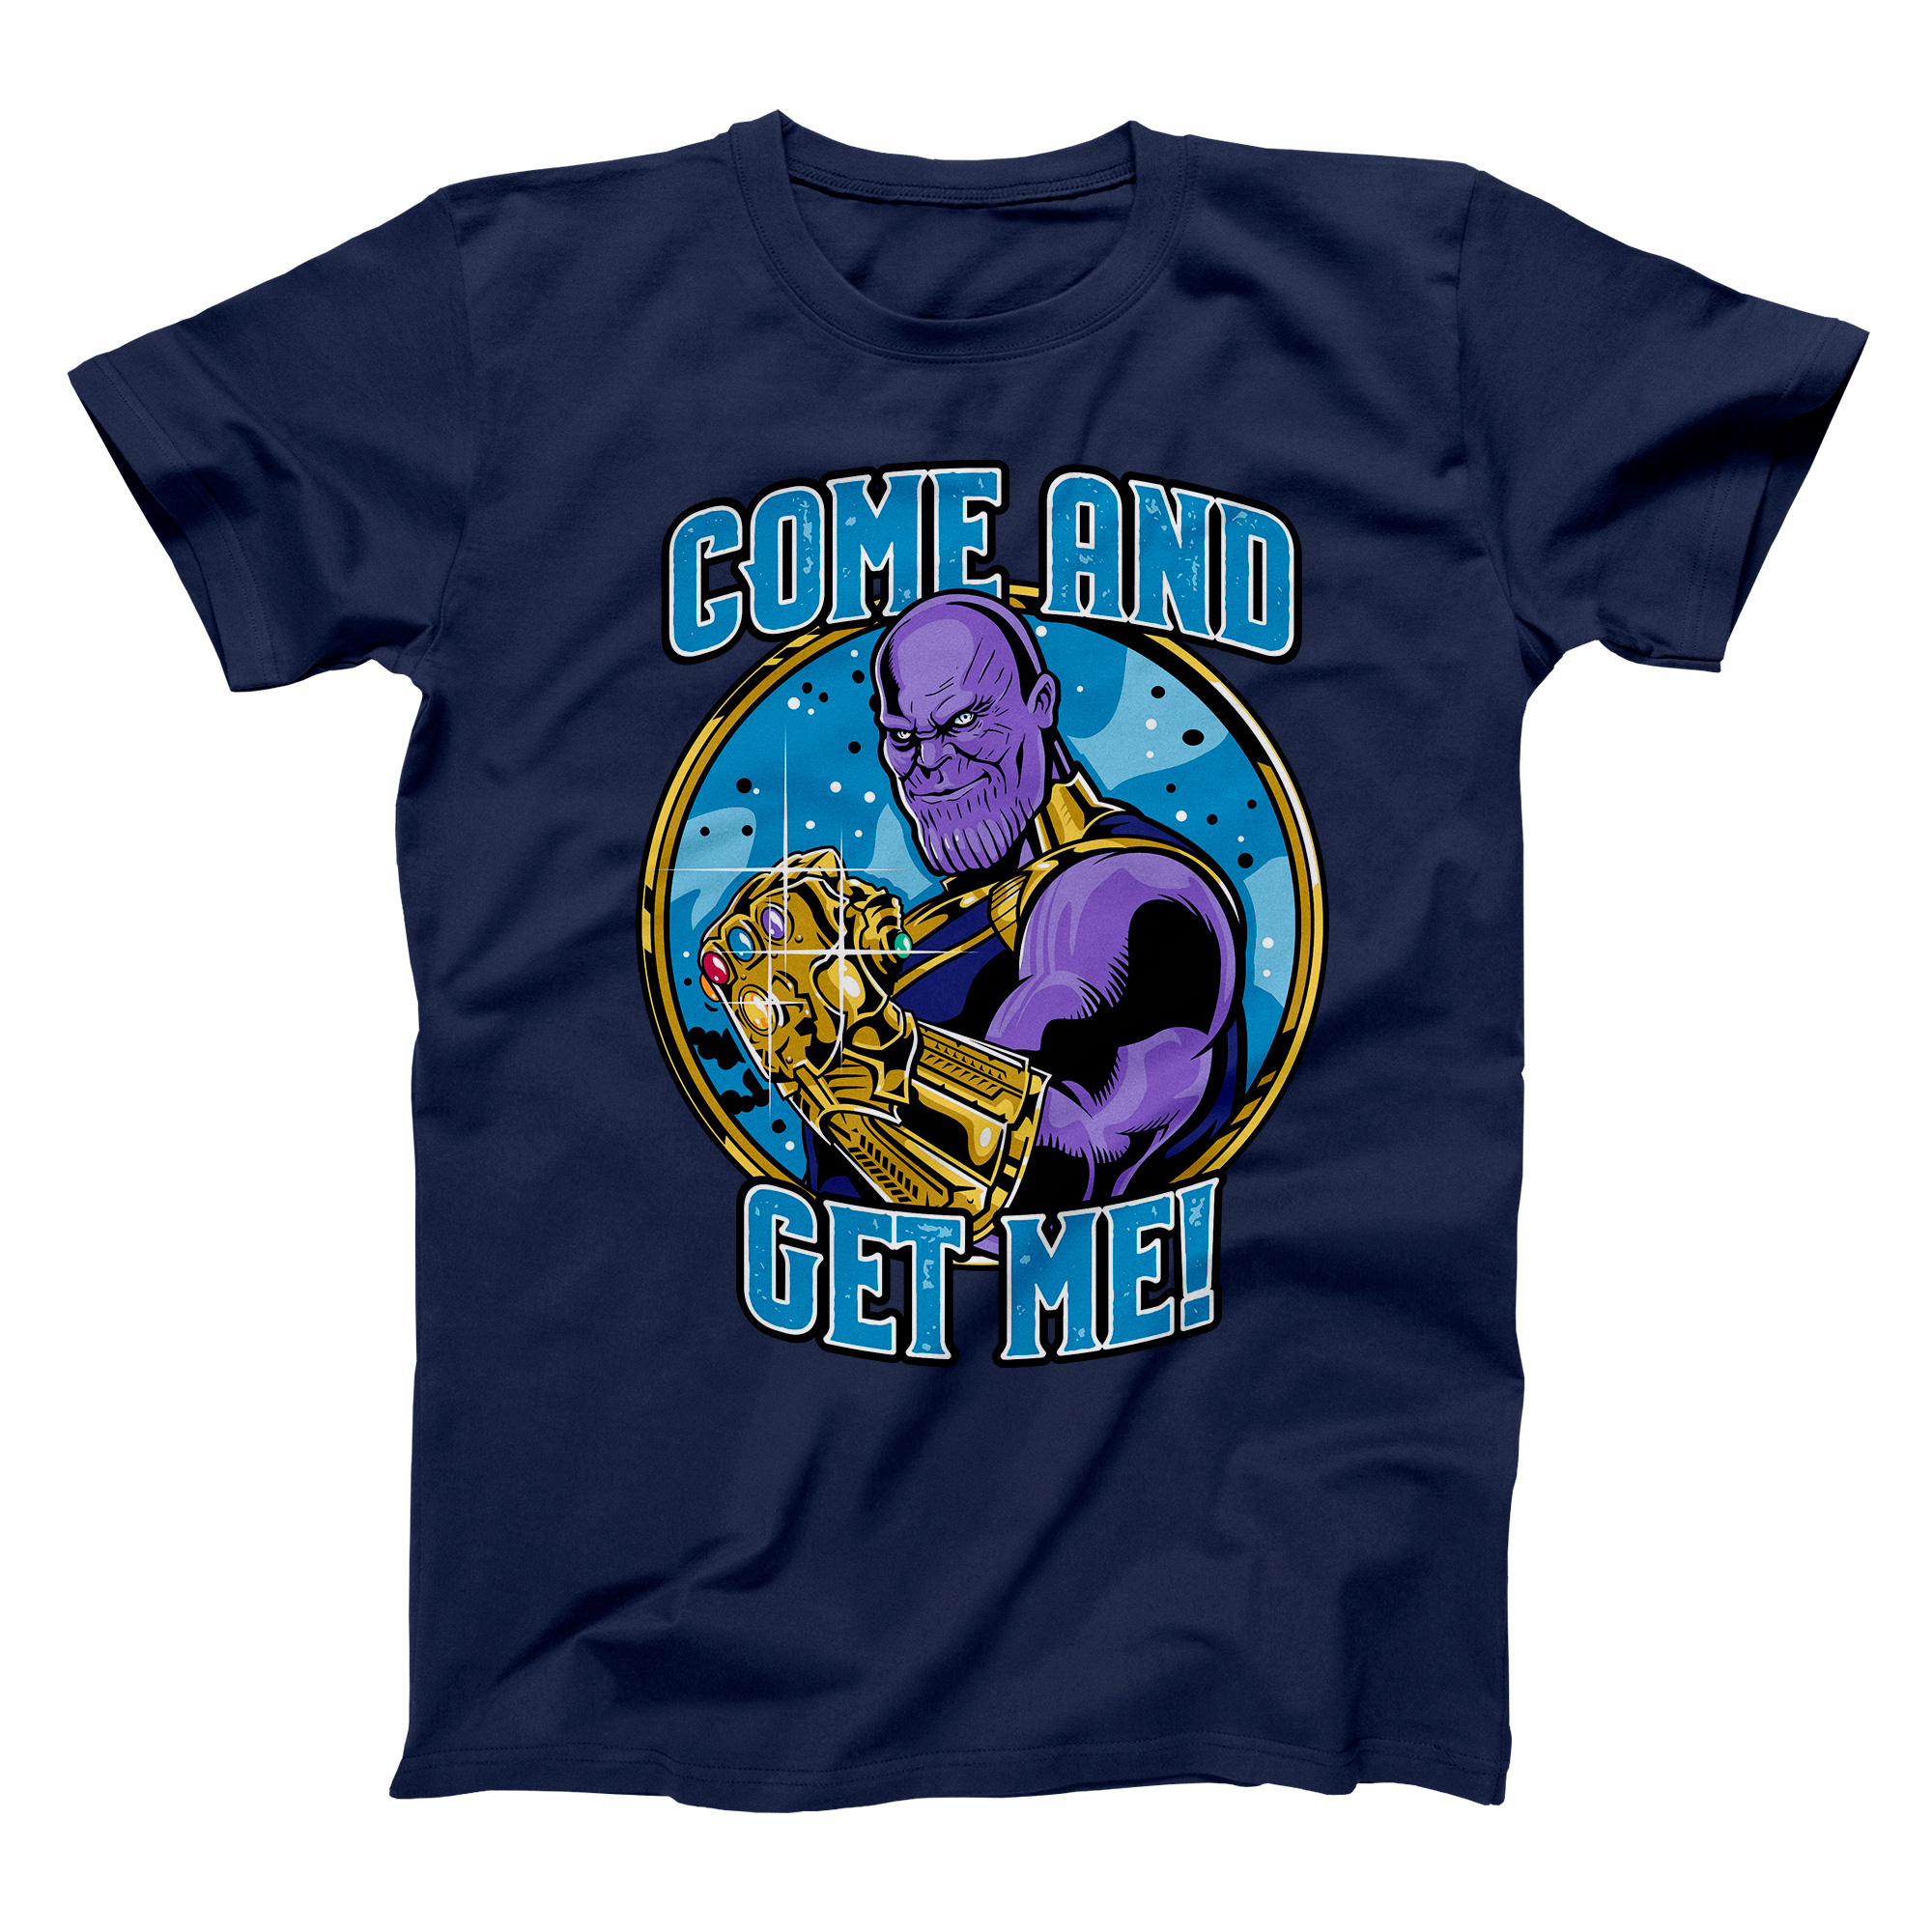 Avengers Infinity War - Come and Get Me!